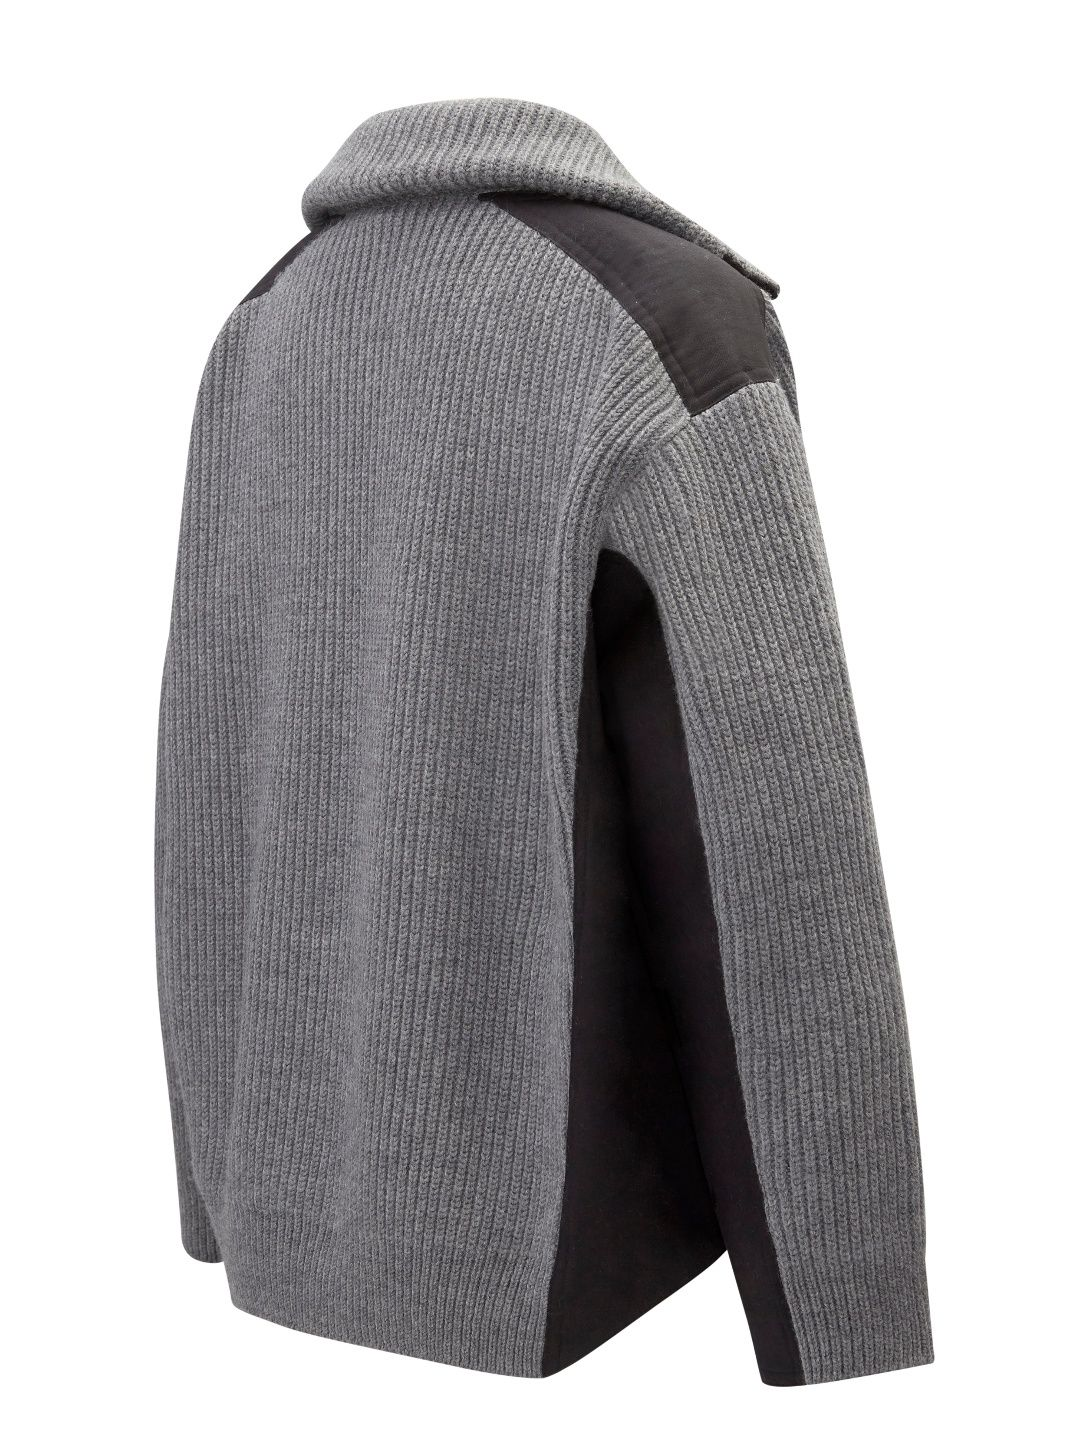 Finishline Cheap Online KNITWEAR - Cardigans Paco Rabanne View Cheap Online Outlet Purchase Newest Sale Online Discount Clearance tJ18neF